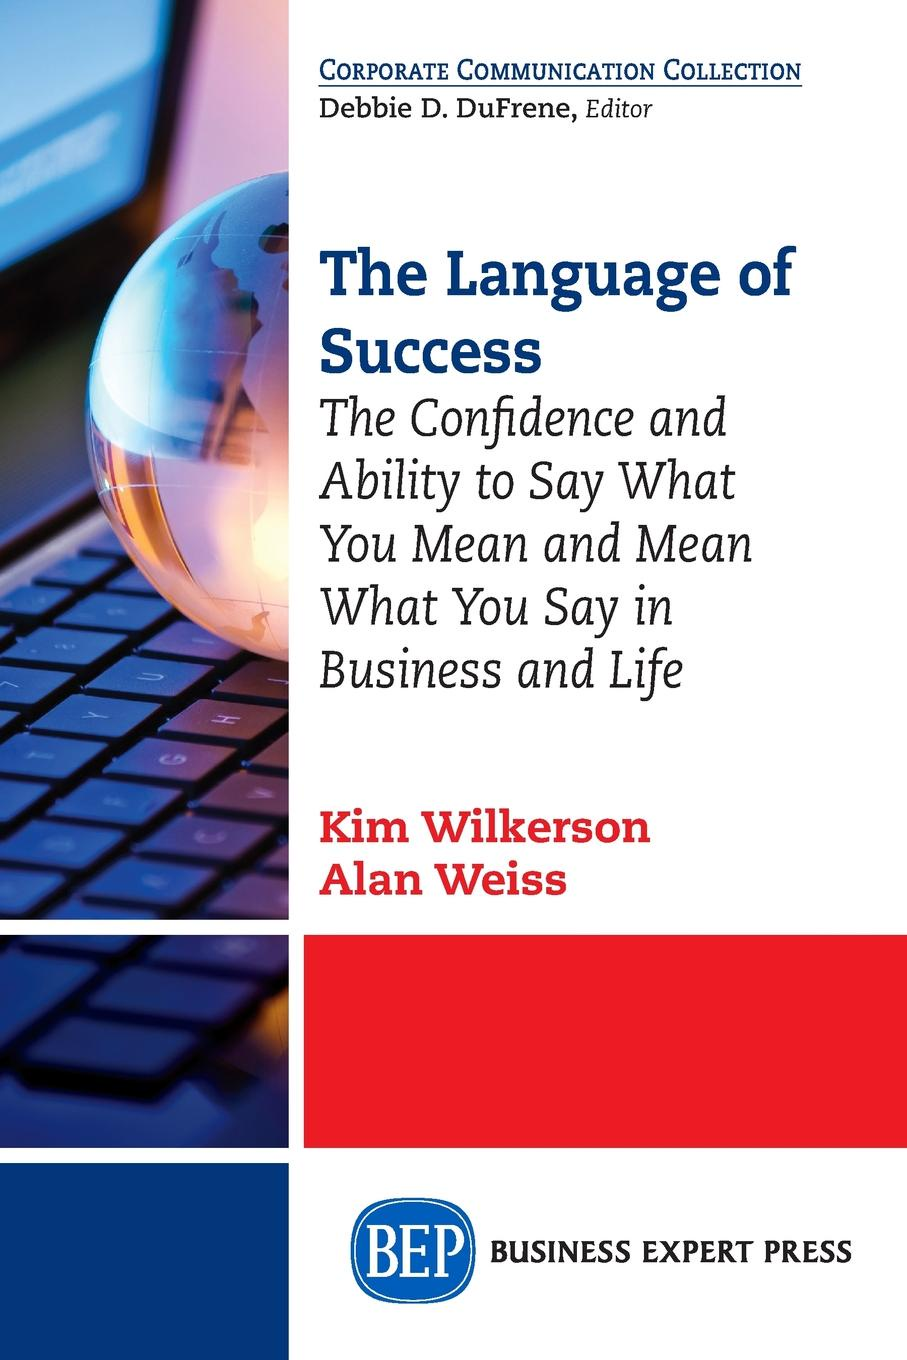 лучшая цена Kim Wilkerson, Alan Weiss The Language of Success. The Confidence and Ability to Say What You Mean and Mean What You Say in Business and Life